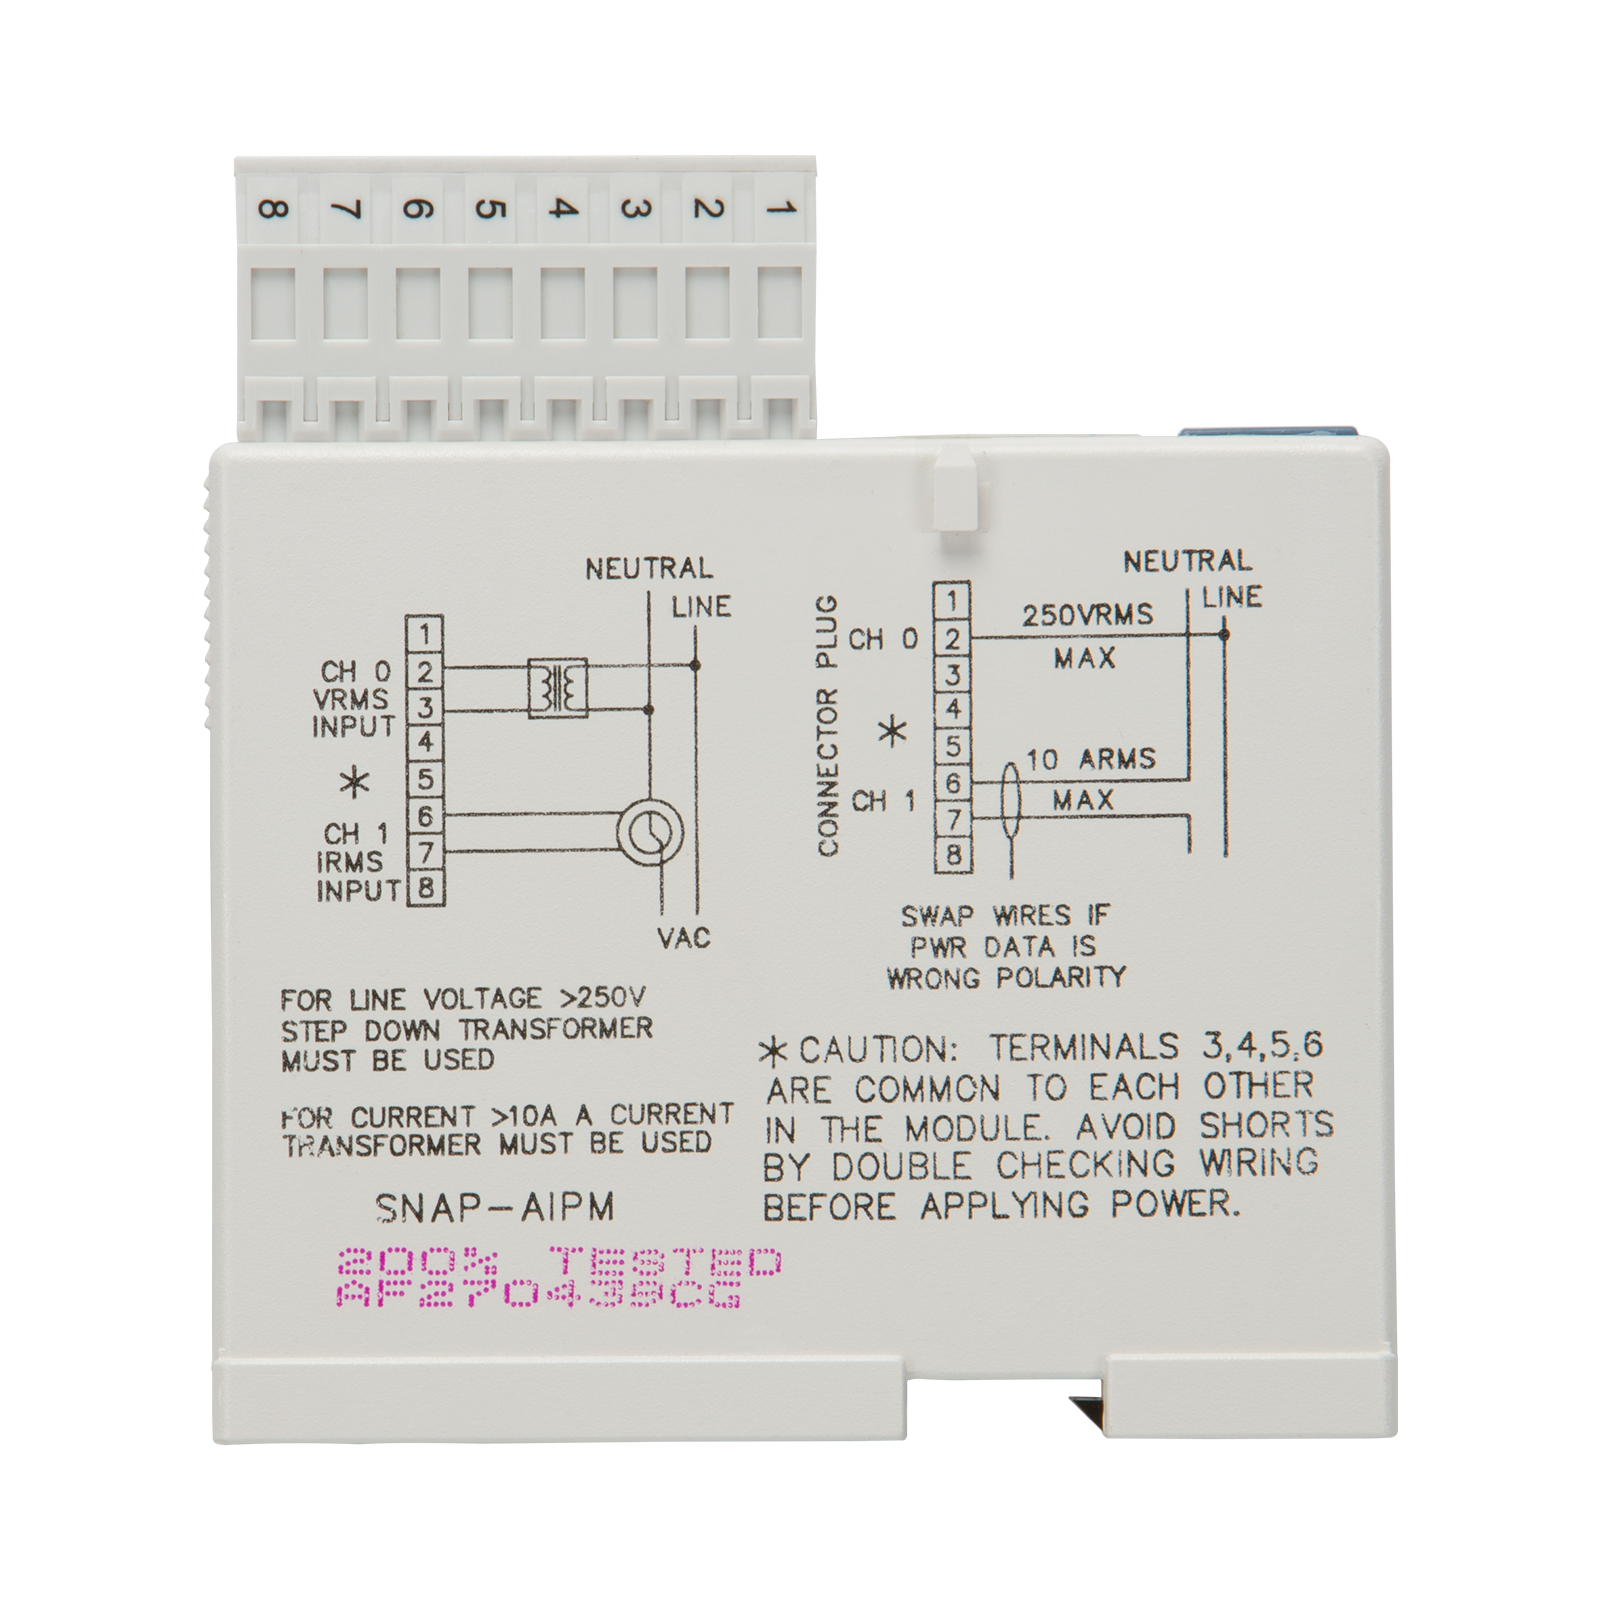 Opto22 Snap Aipm Single Phase Power Monitoring Module 4 Wire 250v Schematic Diagram Previous